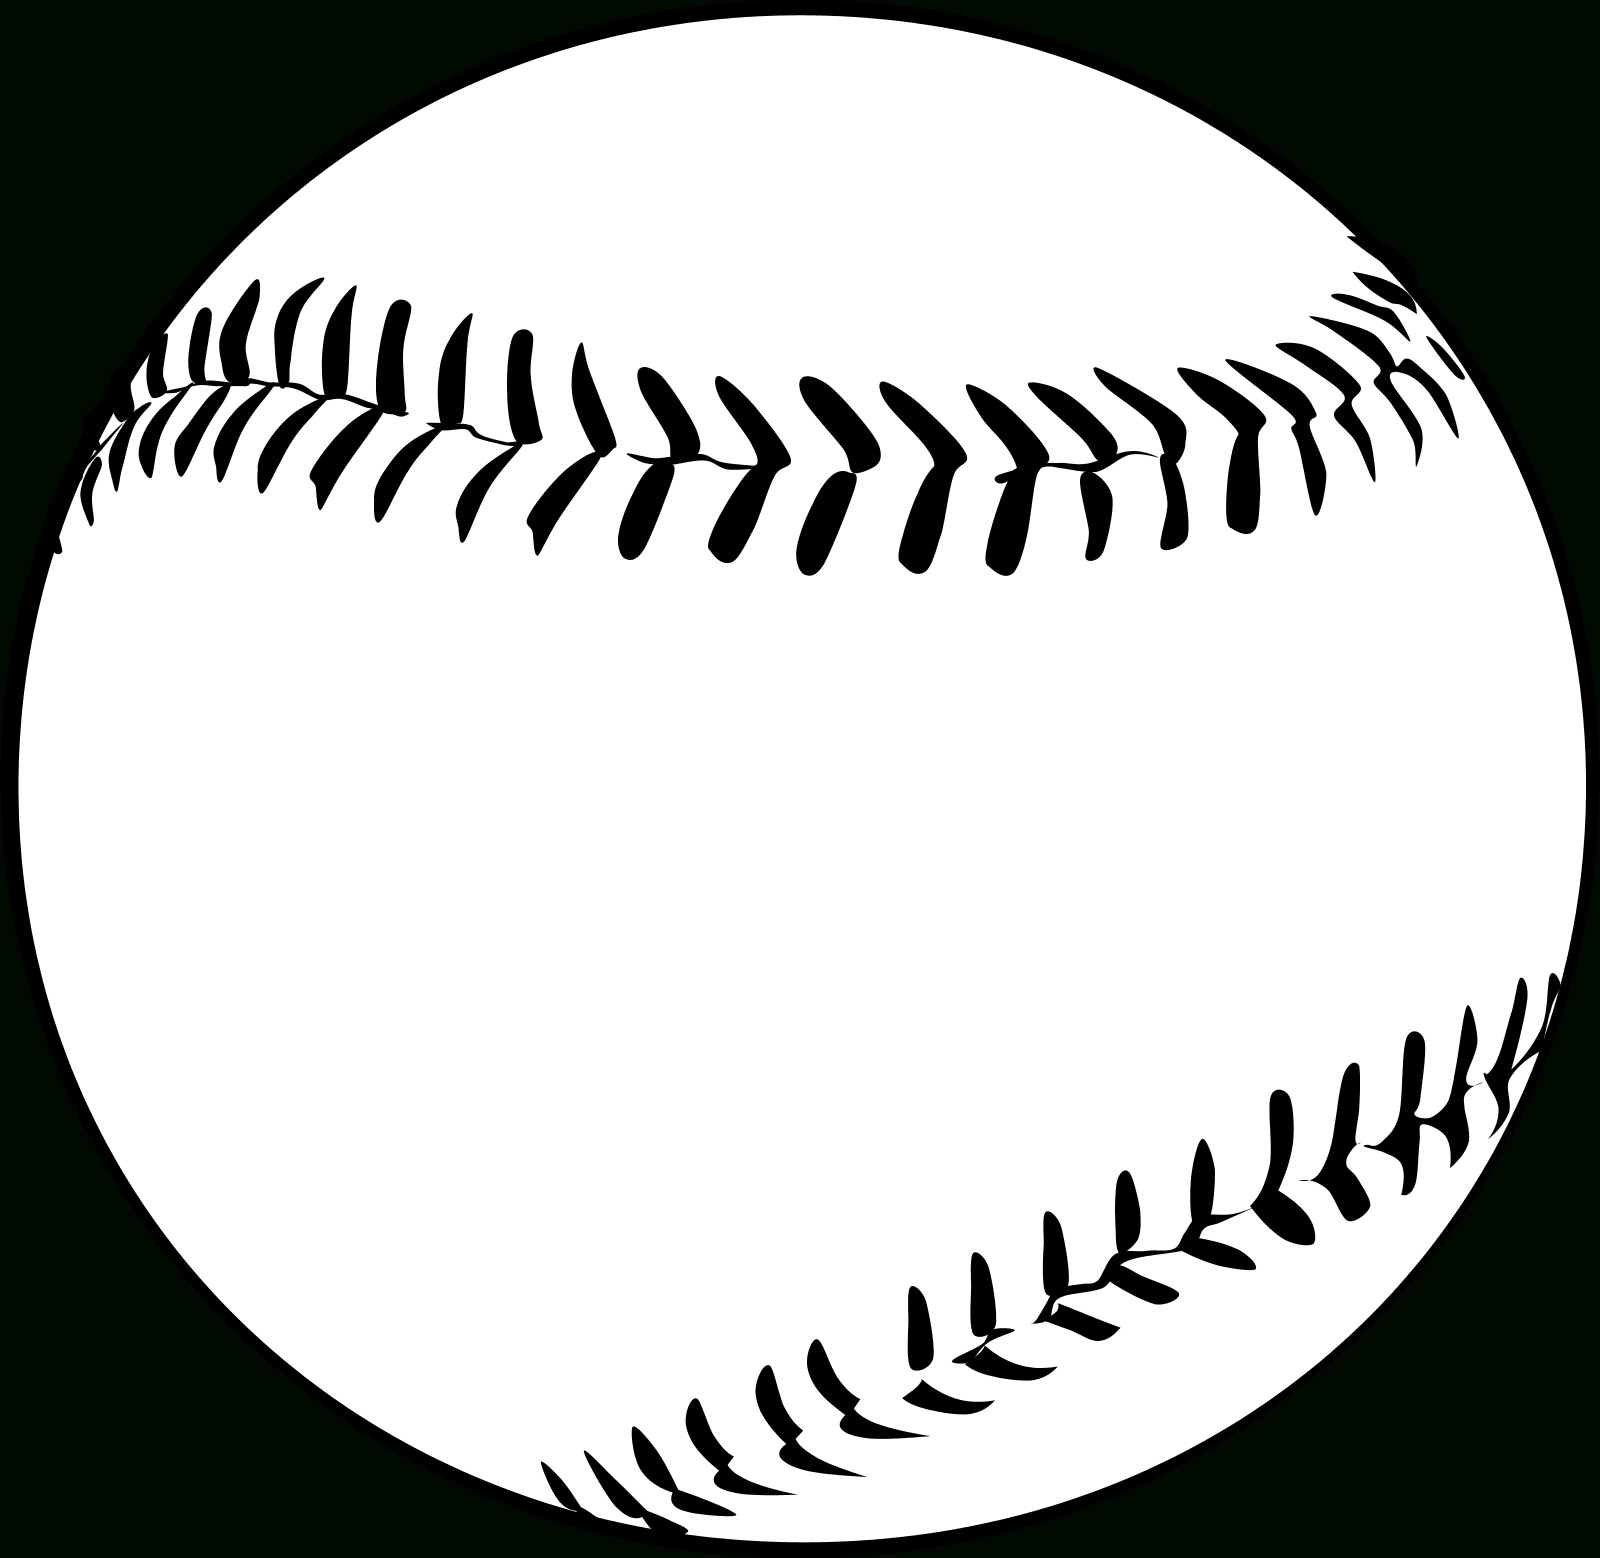 Baseball Clipart Black And White - Letters